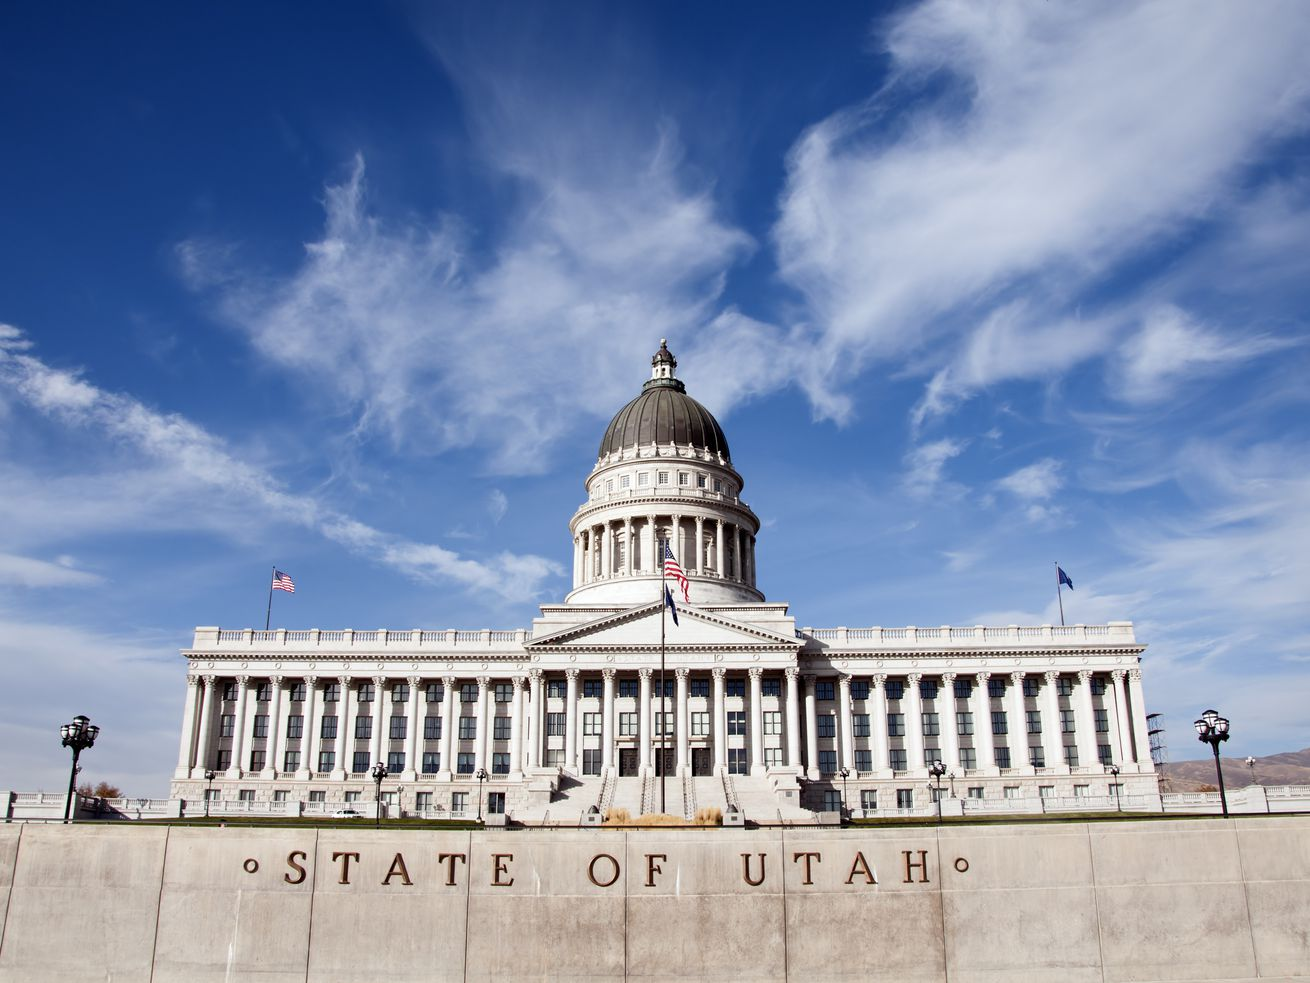 Utah lawmakers eyeing more restrictions on abortion